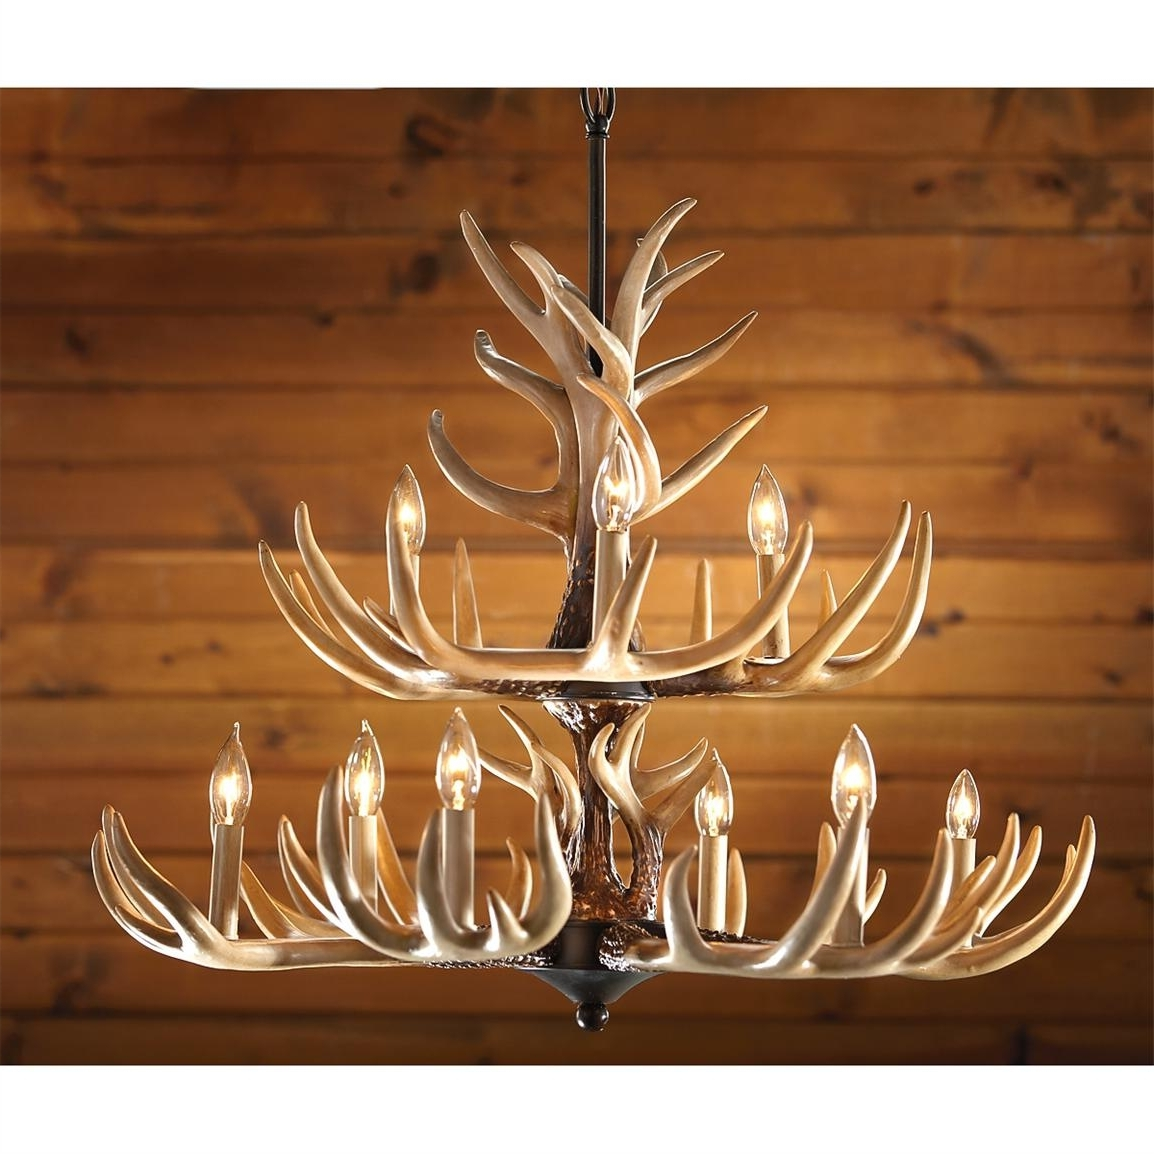 Antler Chandelier With Regard To Preferred Castlecreek 9 Light Whitetail Antler Chandelier – 226093, Lighting (Gallery 8 of 20)